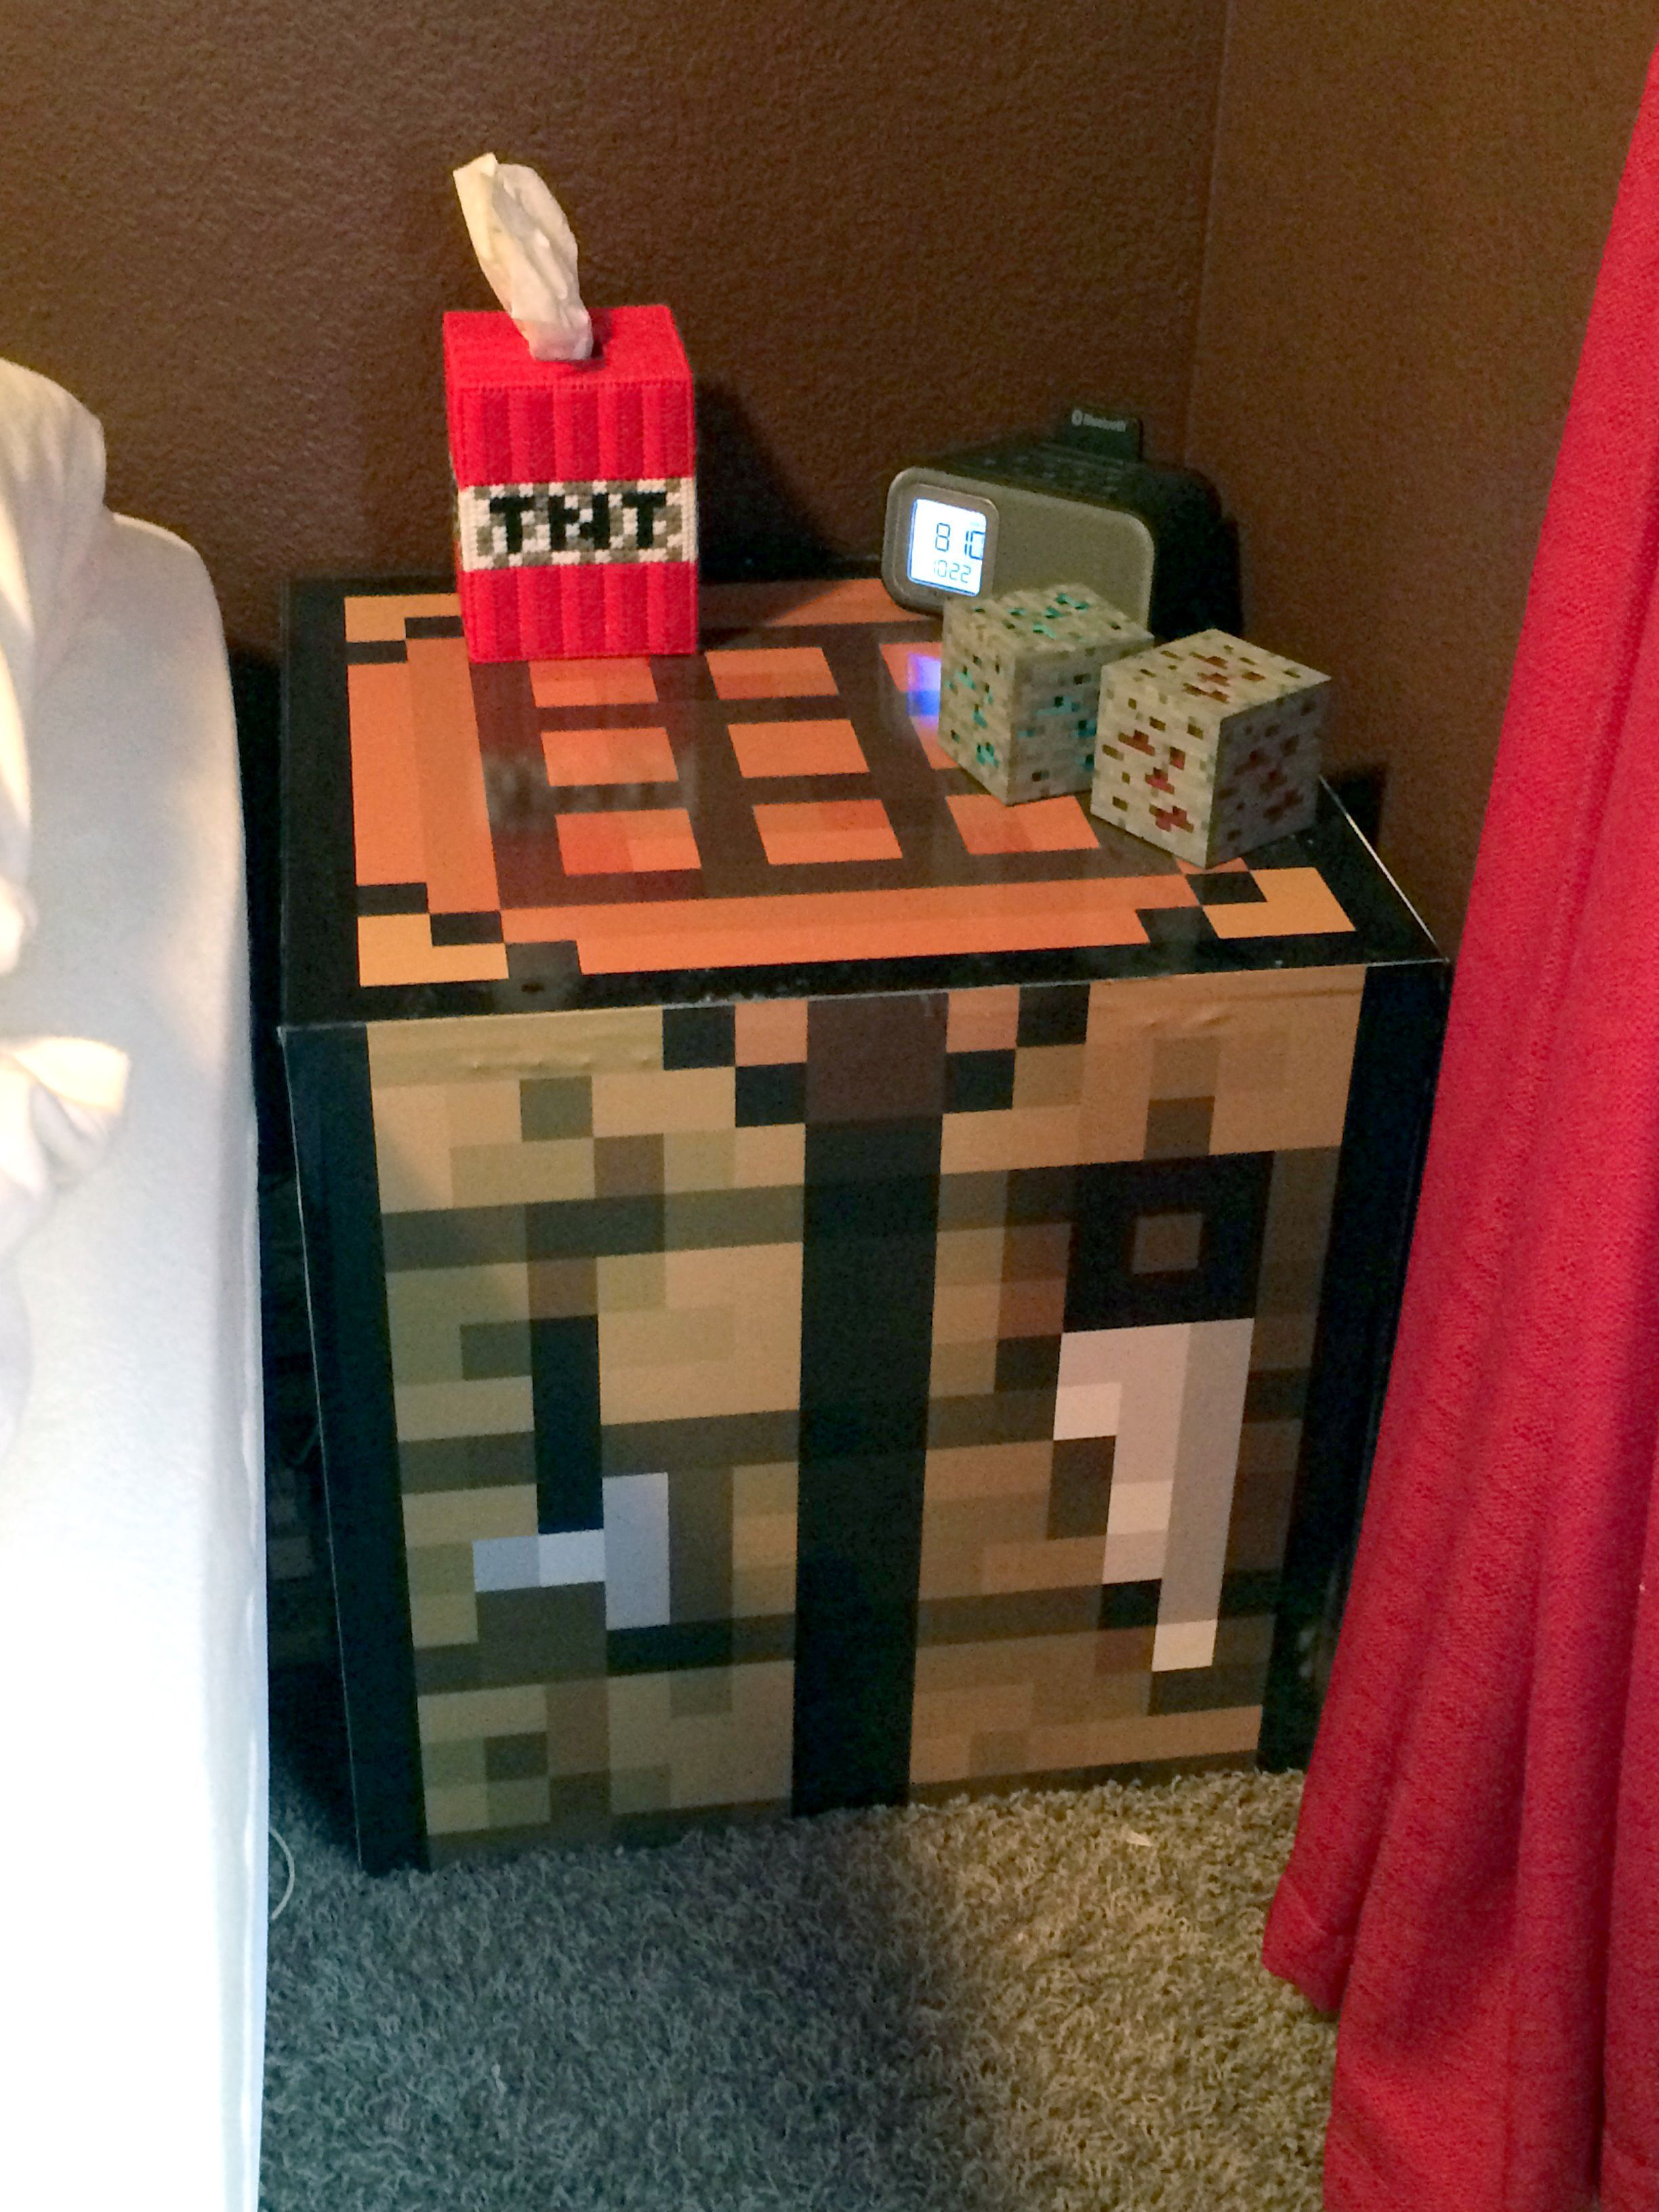 Minecraft Crafting Table Tnt Klenex Box And Lighted Diamond And Redstone Ore For The Nightstand Minecraft Room Minecraft Room Decor Minecraft Bedroom Decor